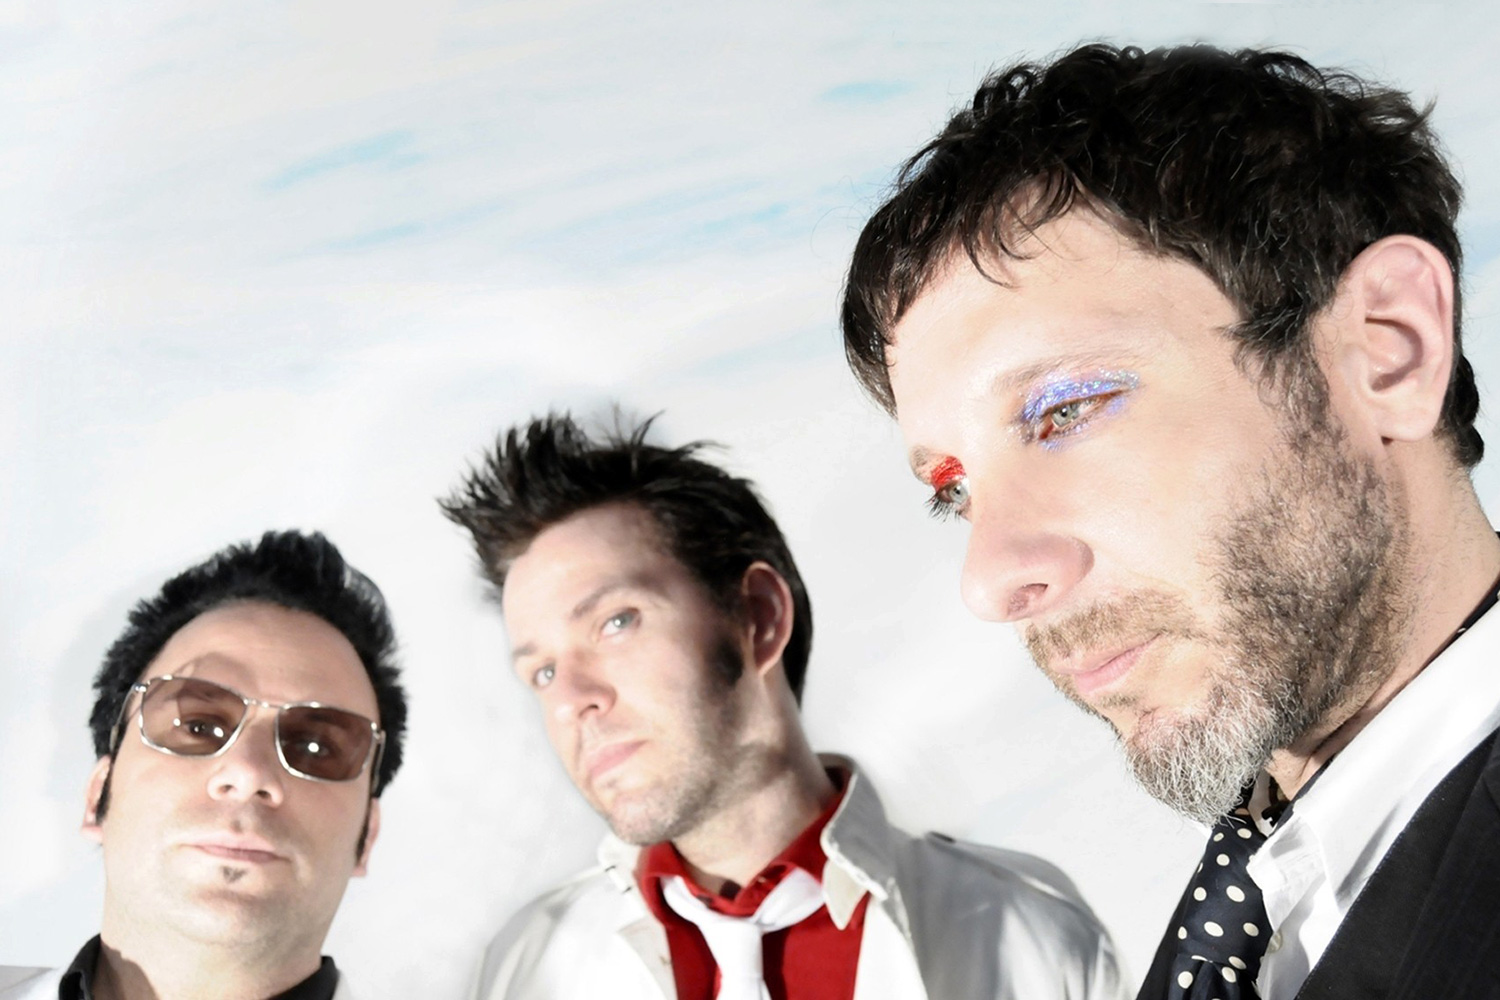 Mercury Rev